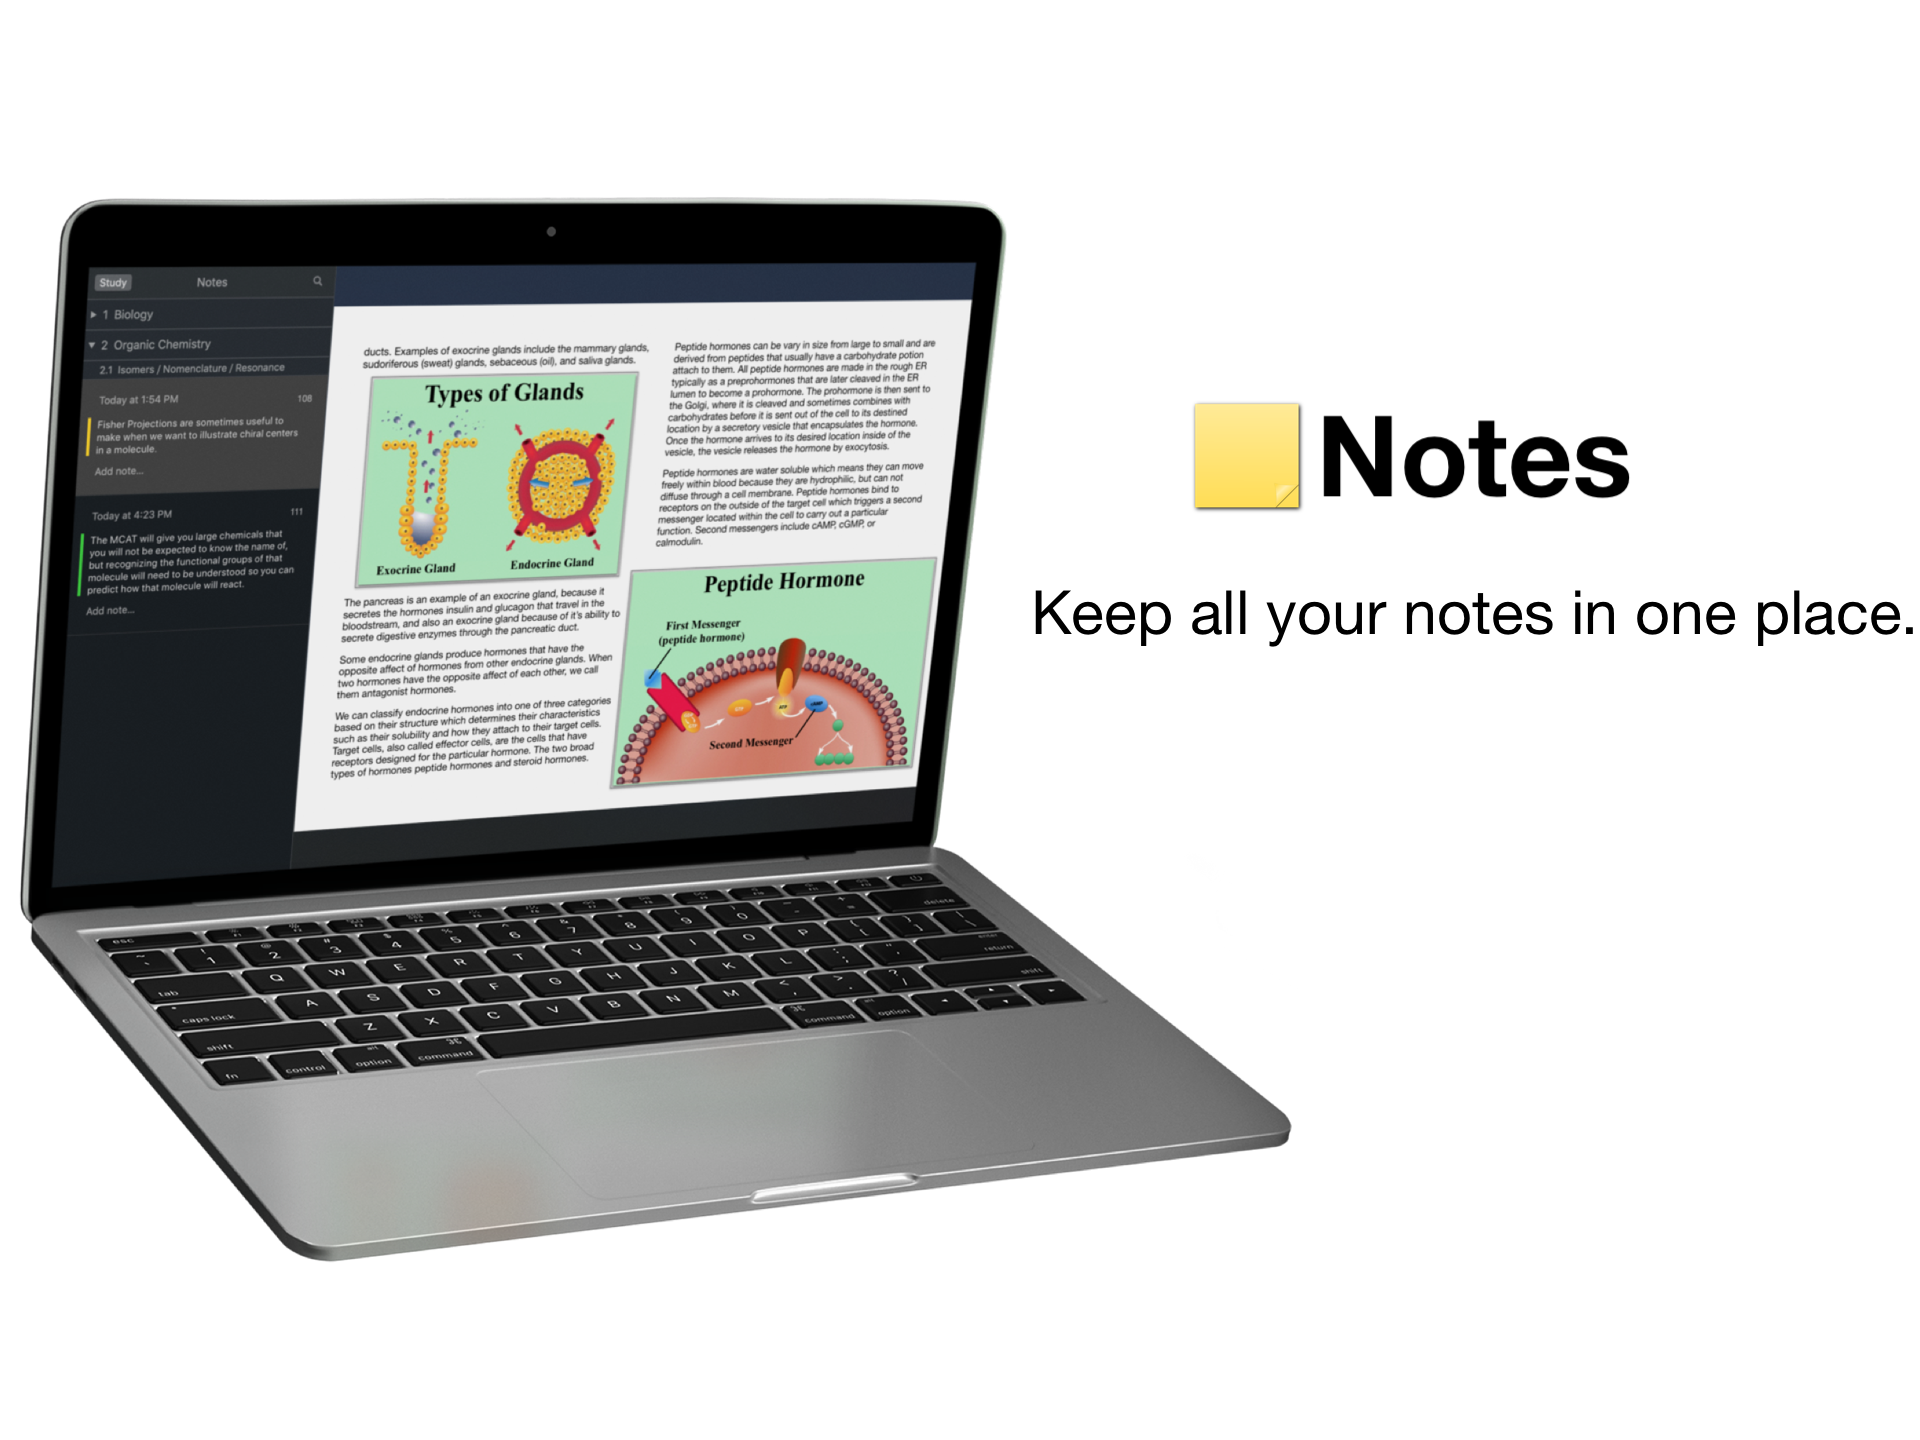 angled-macbook-pro-mockup-floating-on-a-flat-surface-22364-2.png